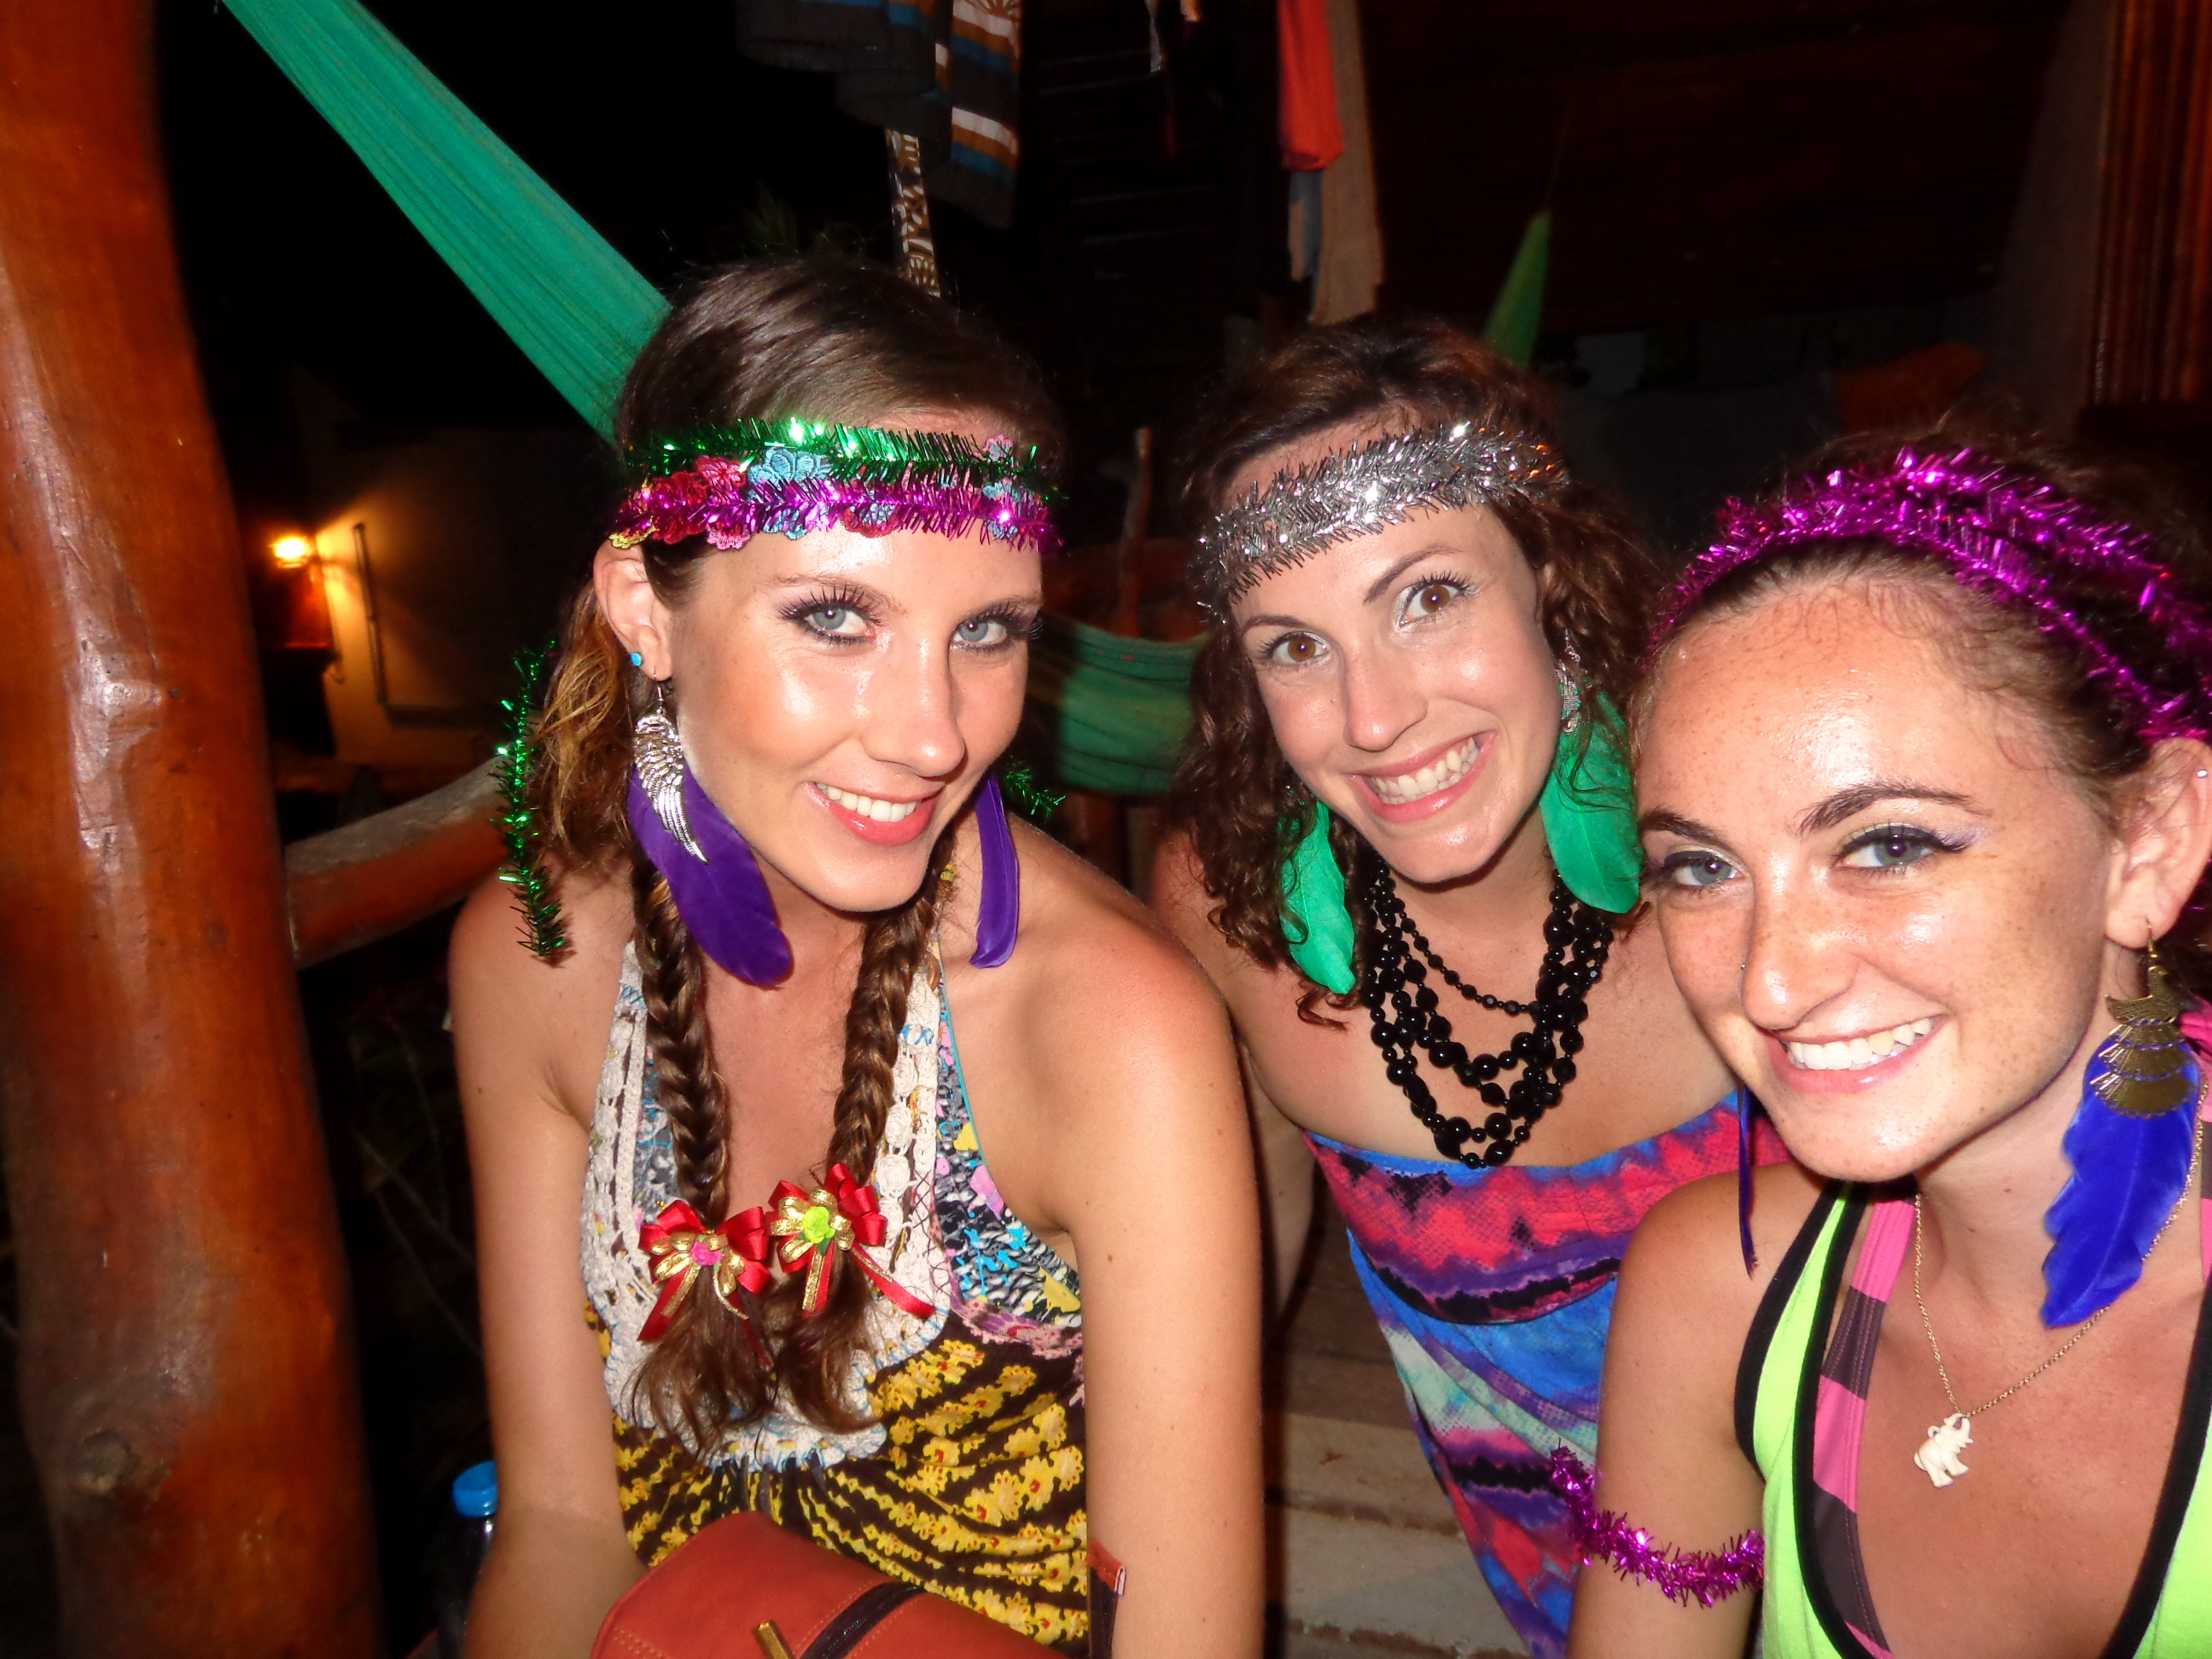 Full moon party garb